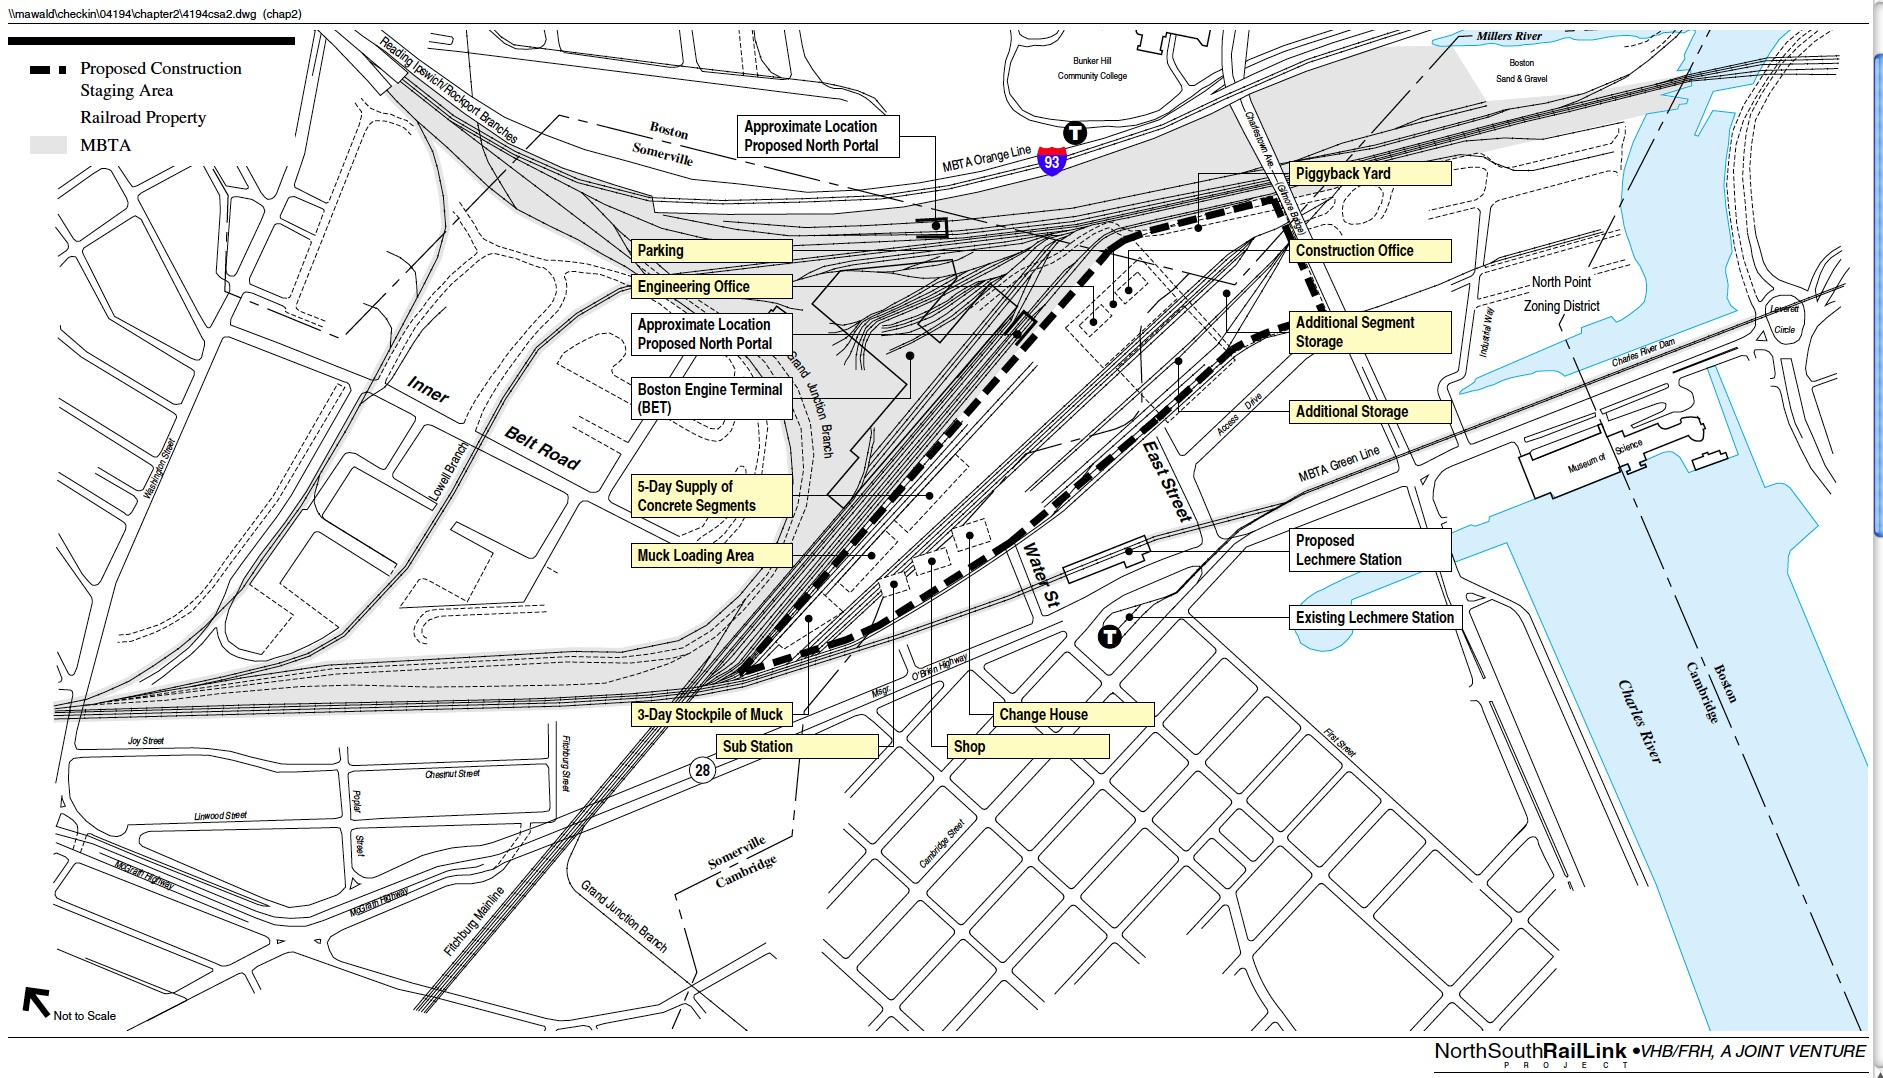 Proposed construction staging area identified in the NSRL DEIR / MIS occupied about half of the recently sold 42 acre parcel. A staging area adjacent to the tunnel portal is needed during the construction period.  [VHB/FRH]